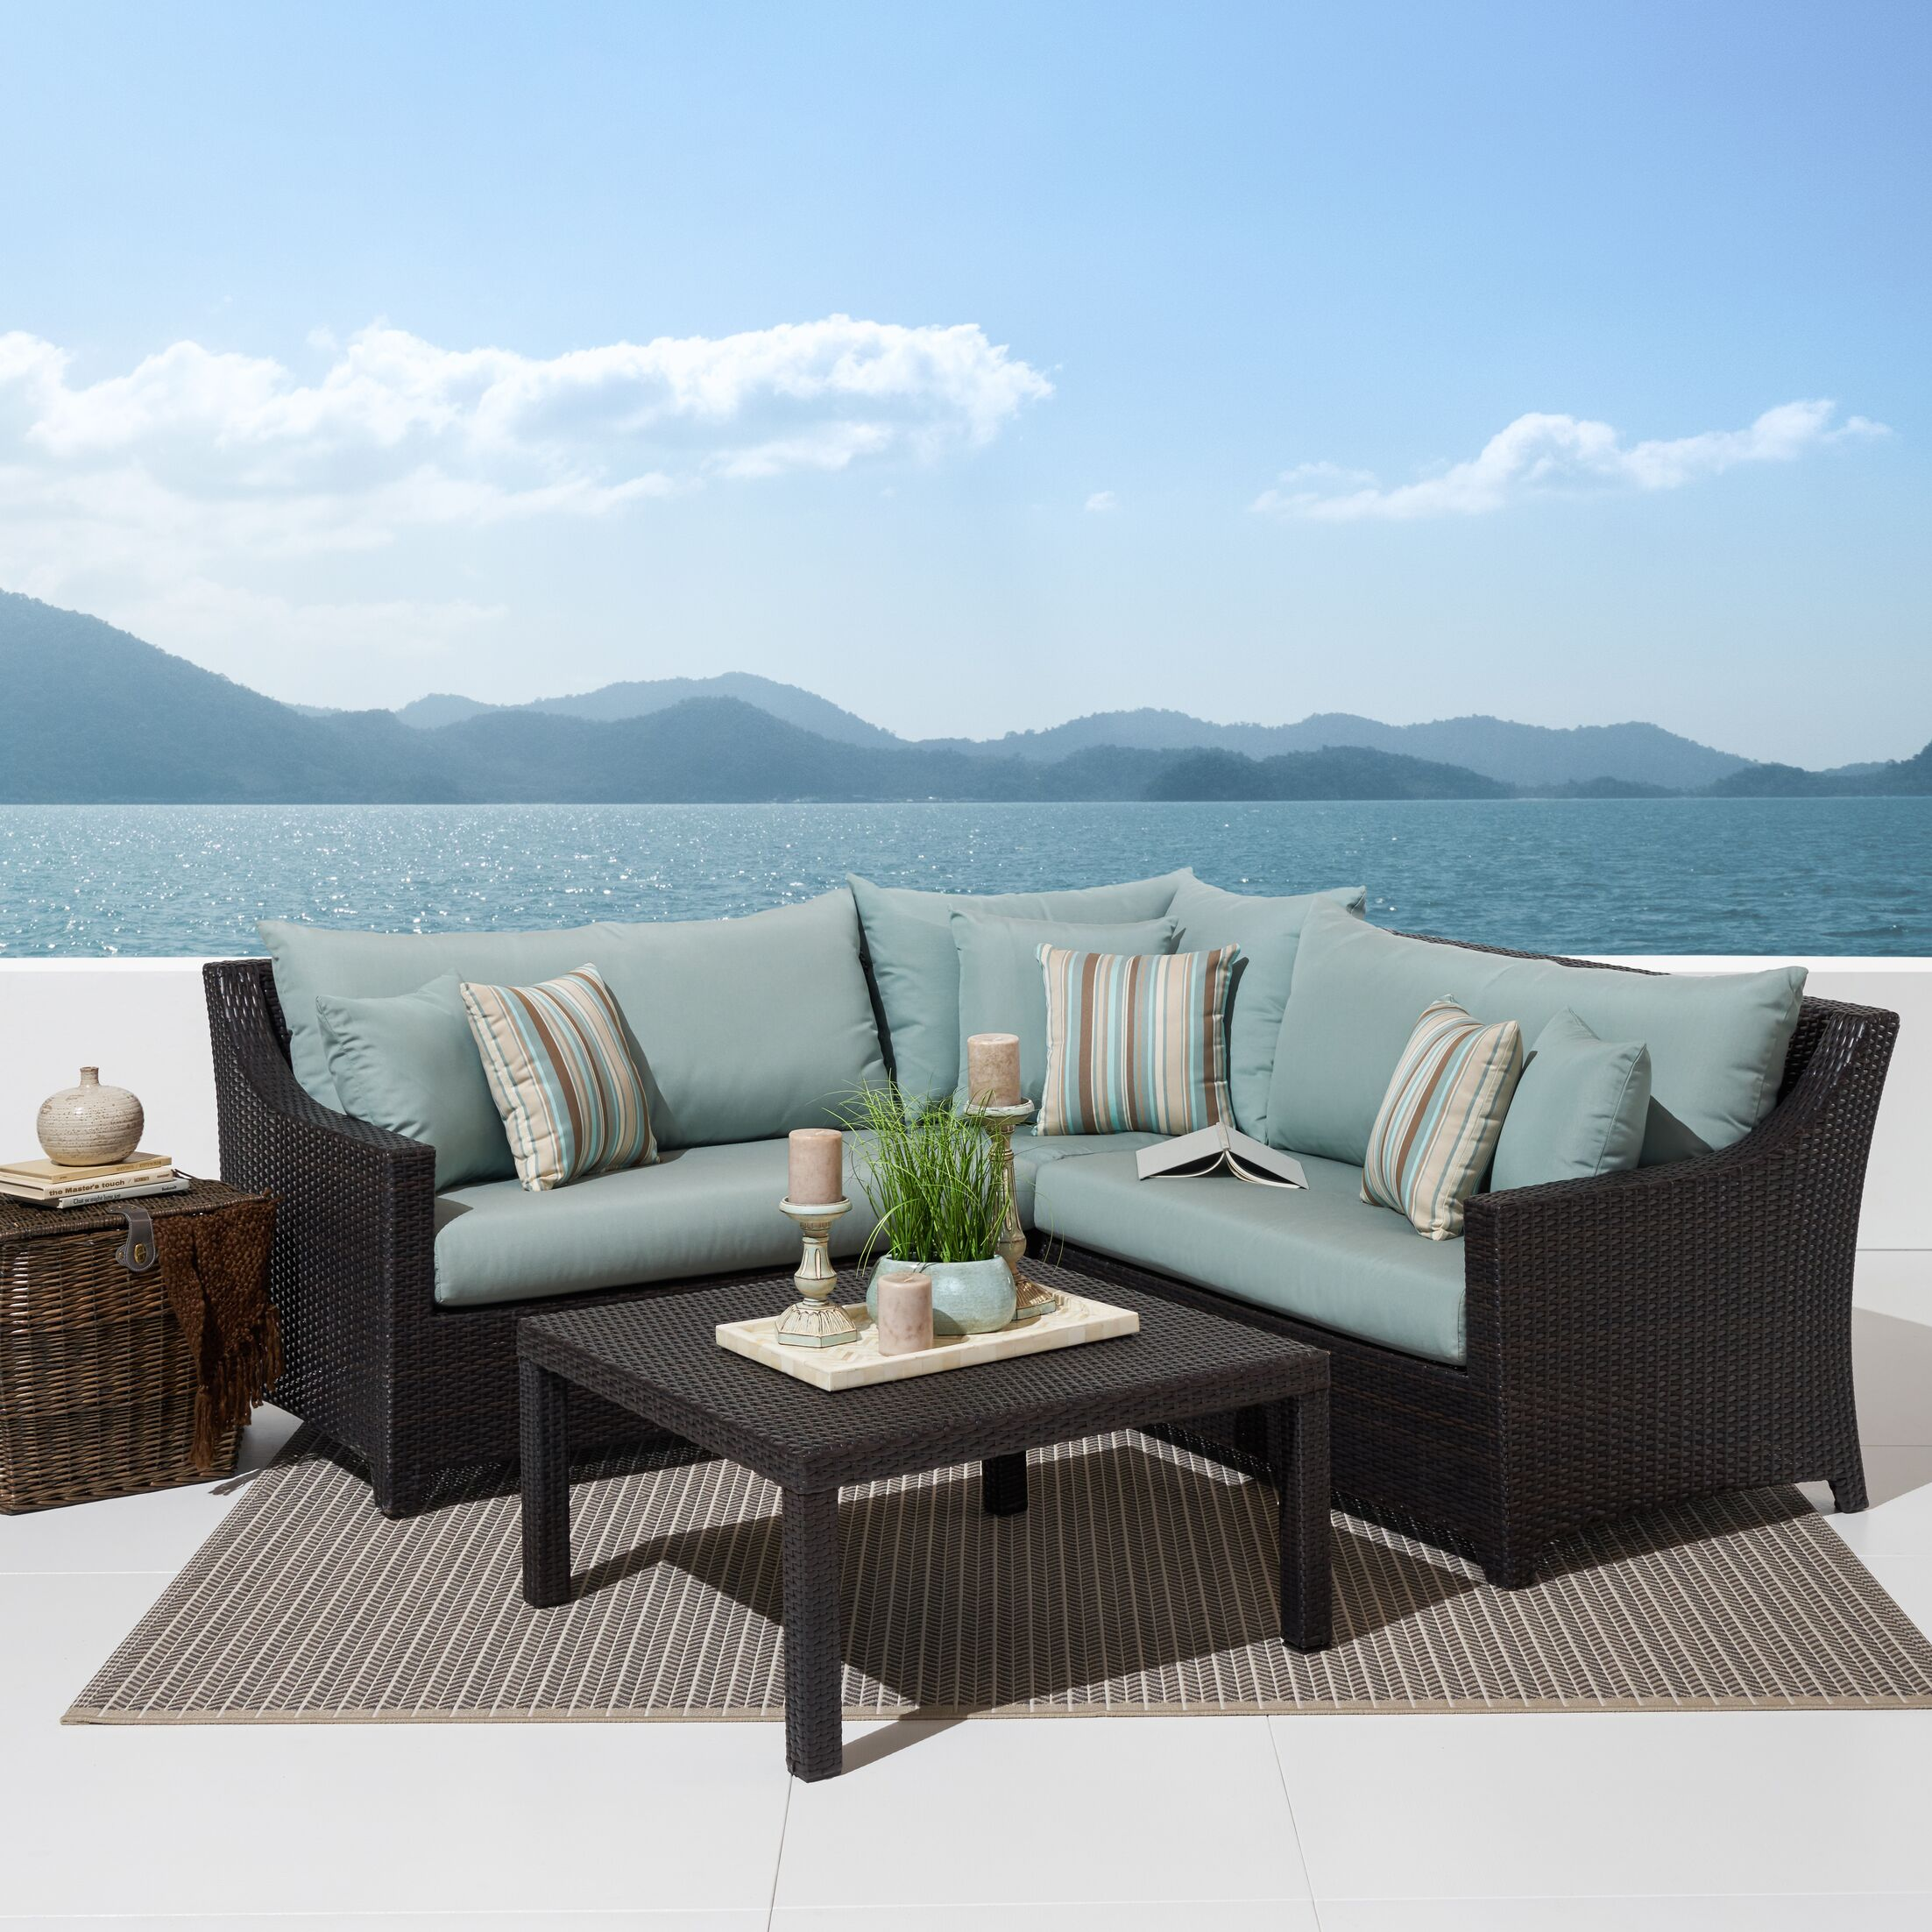 Northridge 4 Piece Sunbrella Sectional Seating Group with Cushions Fabric: Bliss Blue